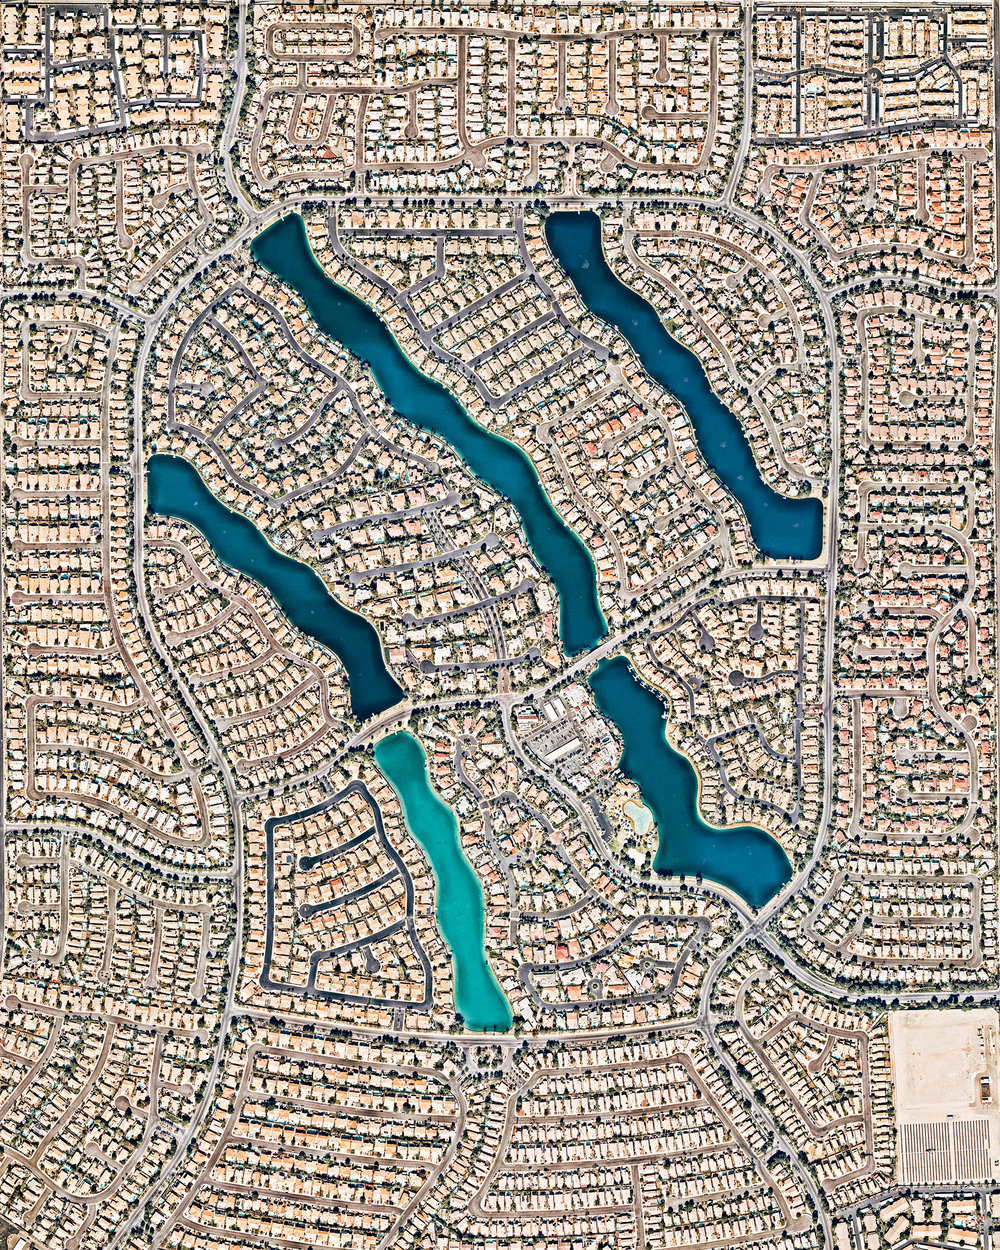 "Desert Shores is a 682-acre master planned community in northwest Las Vegas, Nevada. Constructed in 1988, it has more than 3,300 housing units ranging from condominiums to large, custom-built homes. At the center of Desert Shores are four man-made lakes, the largest of which — Lake Jacqueline — is flanked by the other three.  36°12'43.9""N, 115°16'08.1""W  Source imagery: Nearmap"